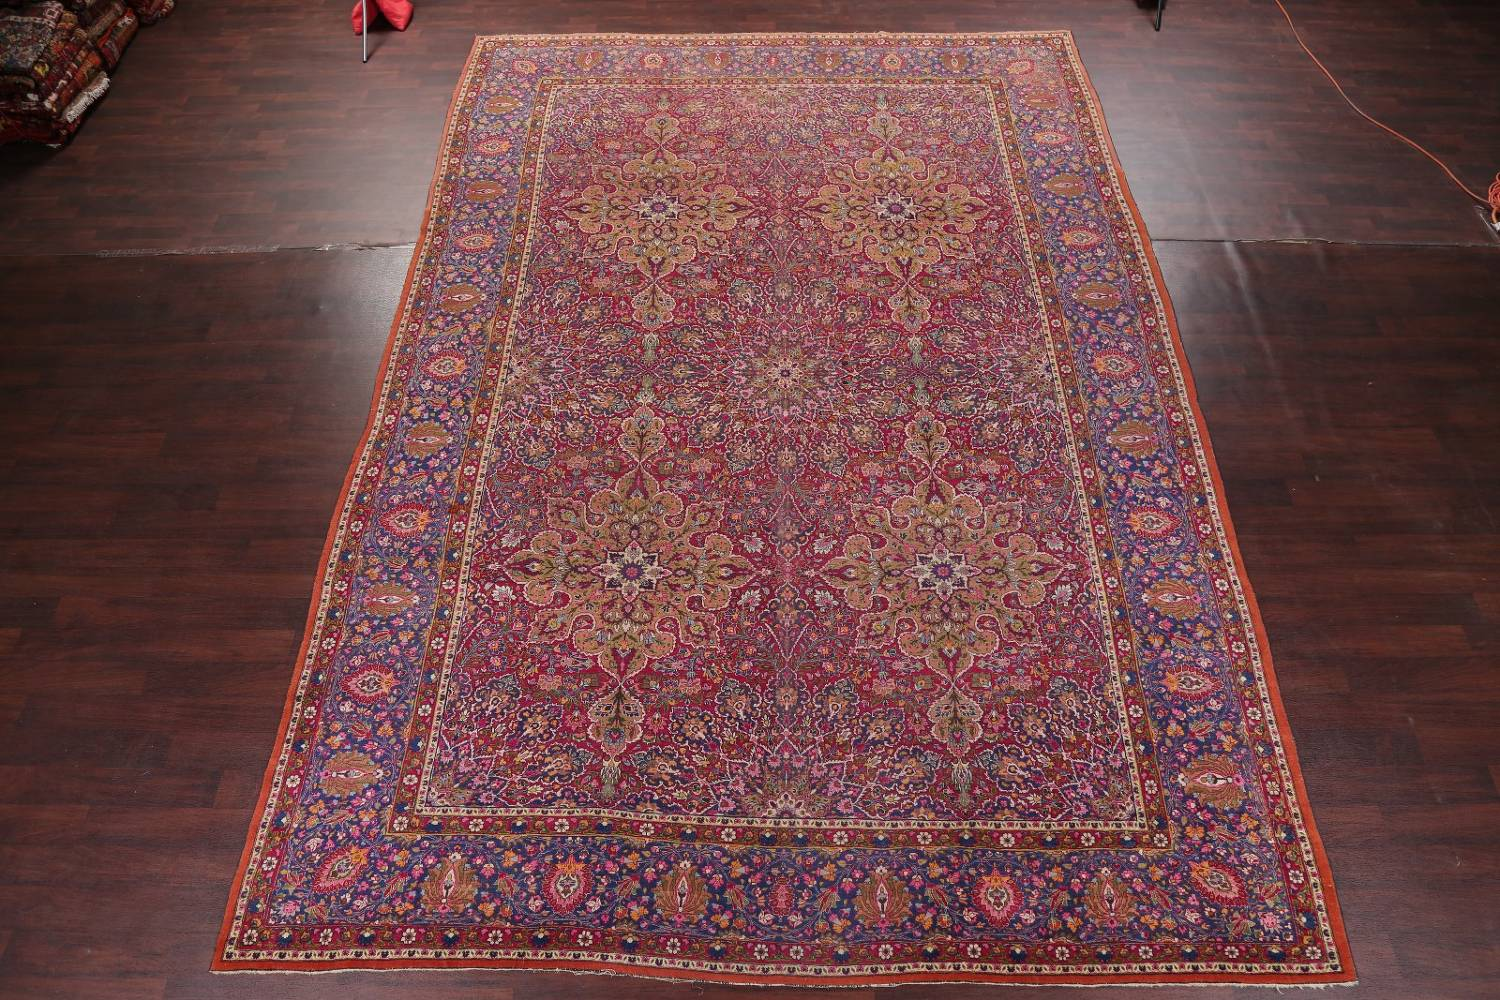 All-Over Floral 11x16 Mashad Persian Area Rug image 2